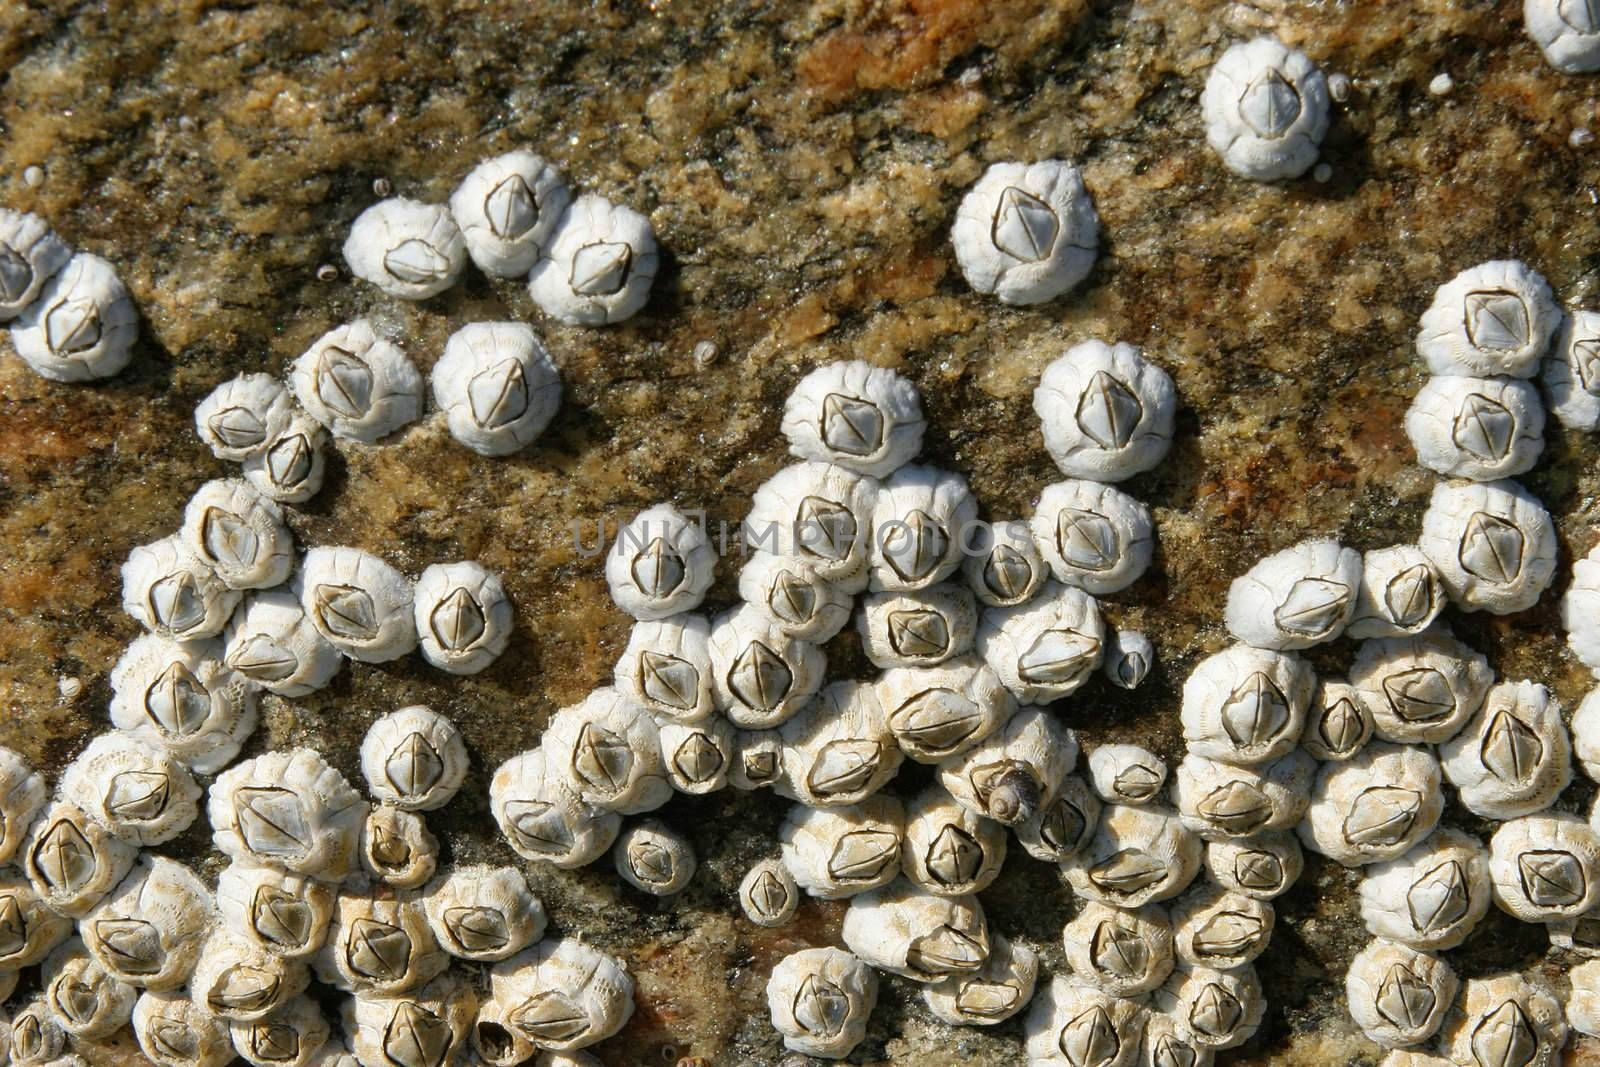 Sea animals on a surface of a rock